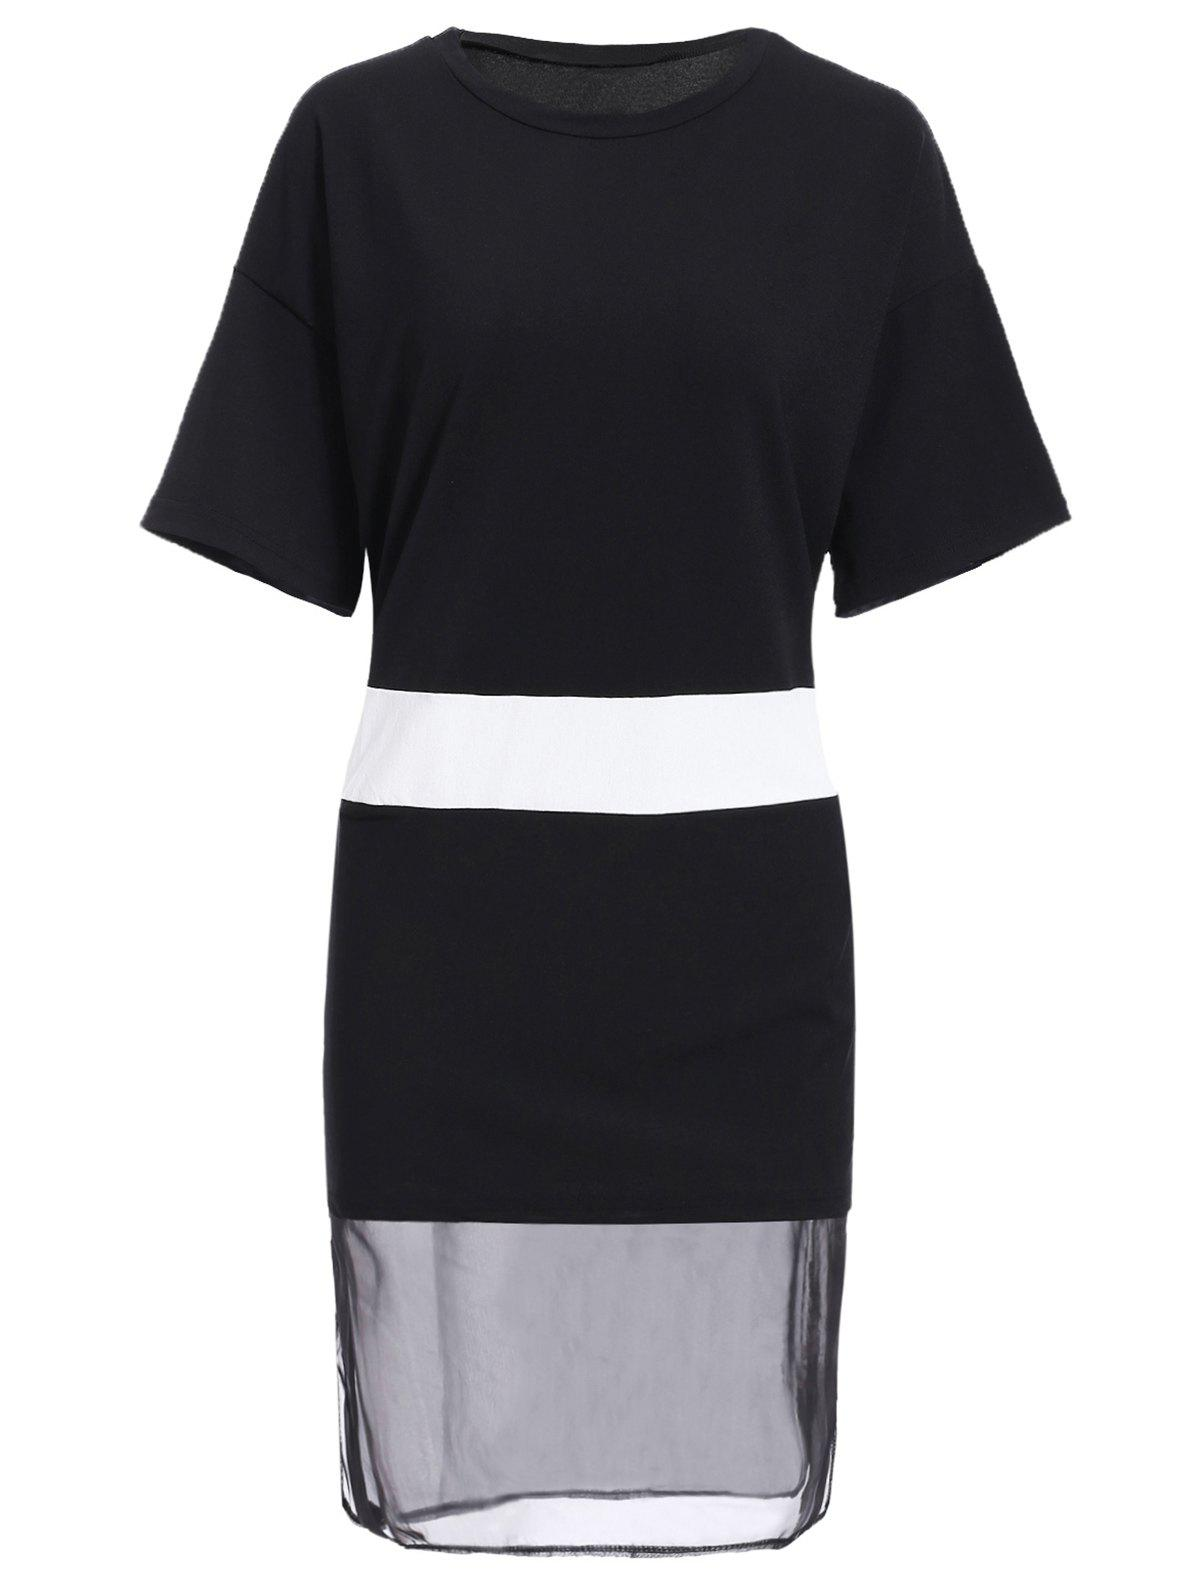 Casual Jewel Neck Short Sleeve Spliced Hit Color Dress For Women - BLACK ONE SIZE(FIT SIZE XS TO M)